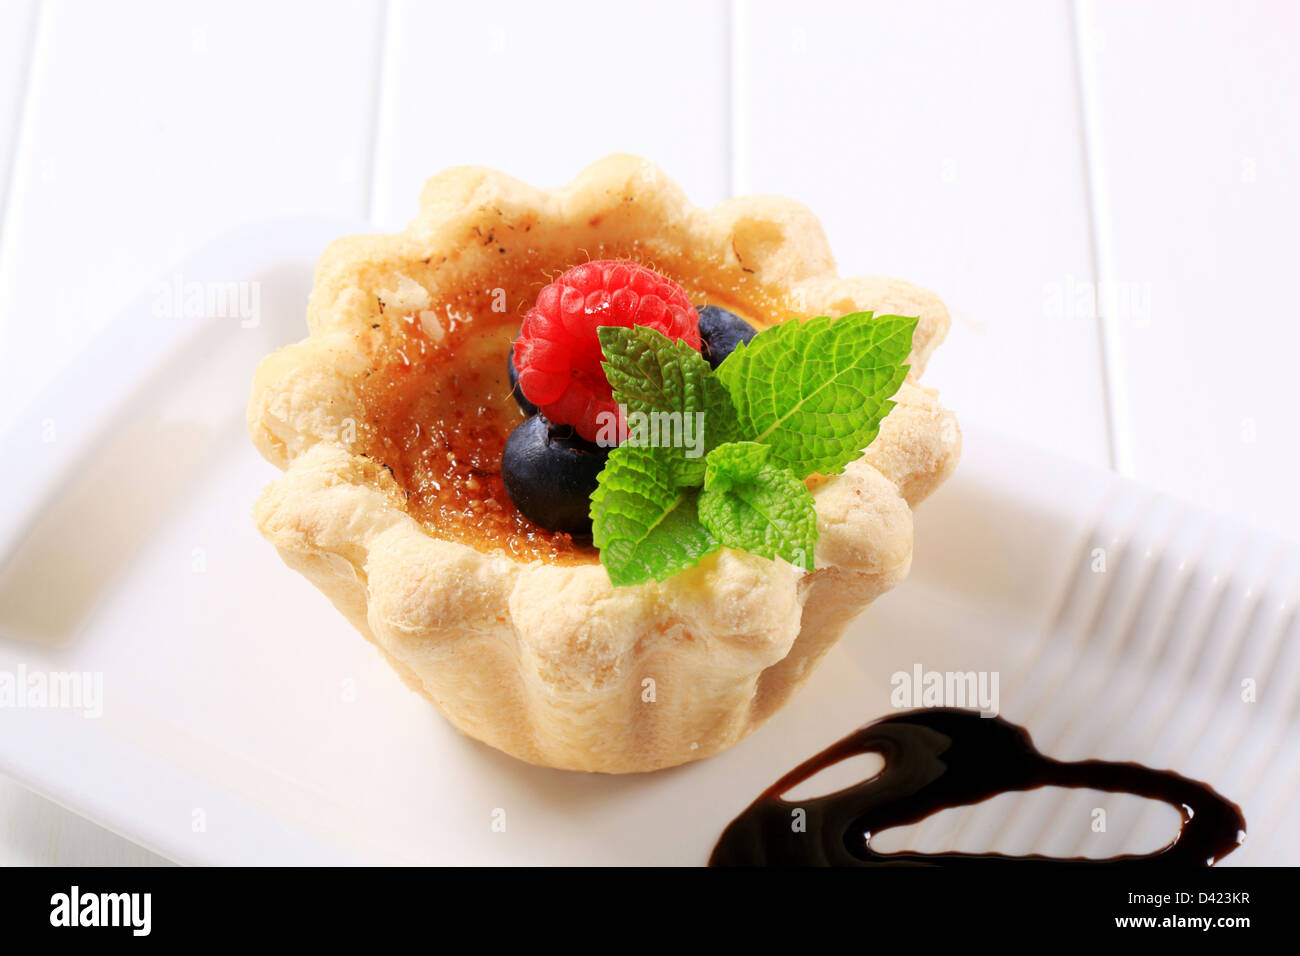 Mini tartlet shell filled with Creme brulee - Stock Image